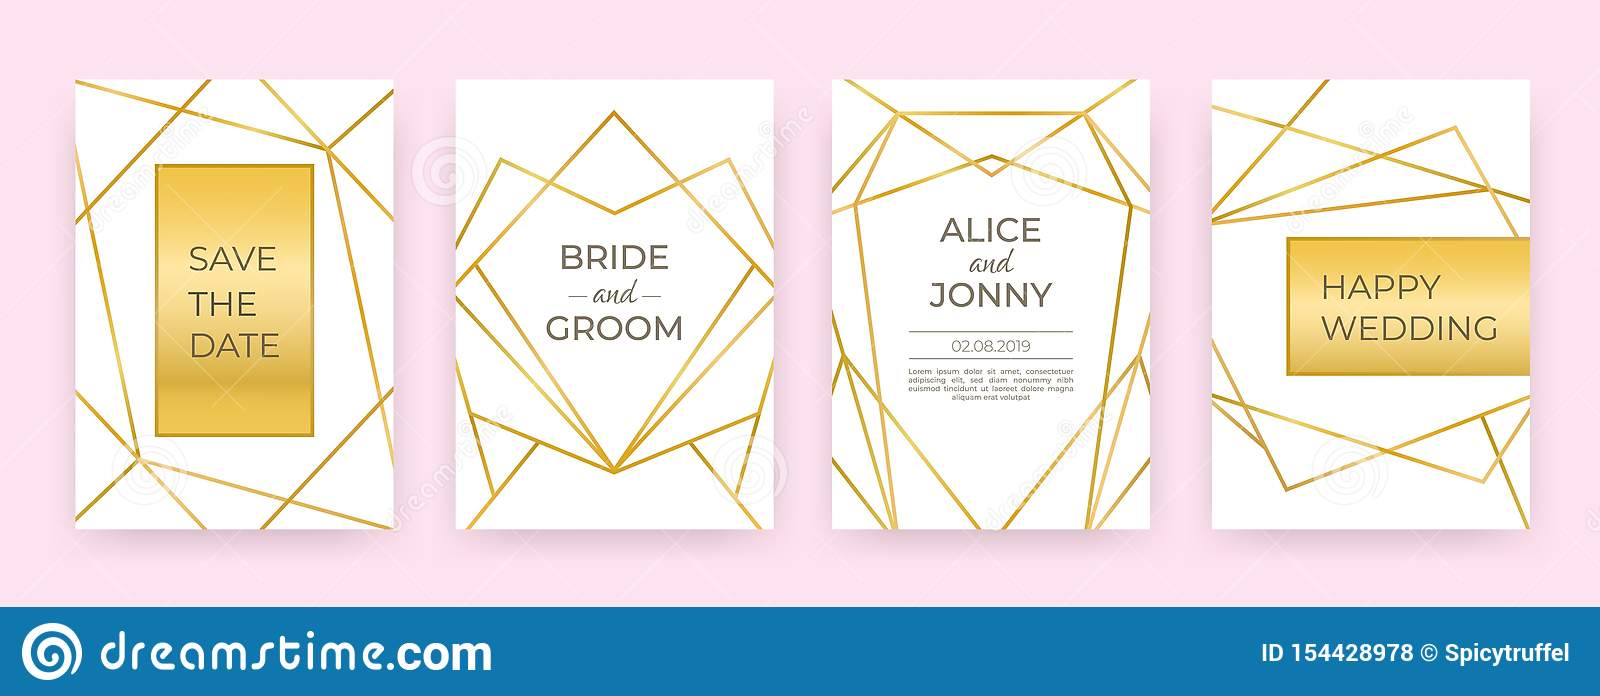 Luxury Wedding Line Posters Golden Fashion Borders Design